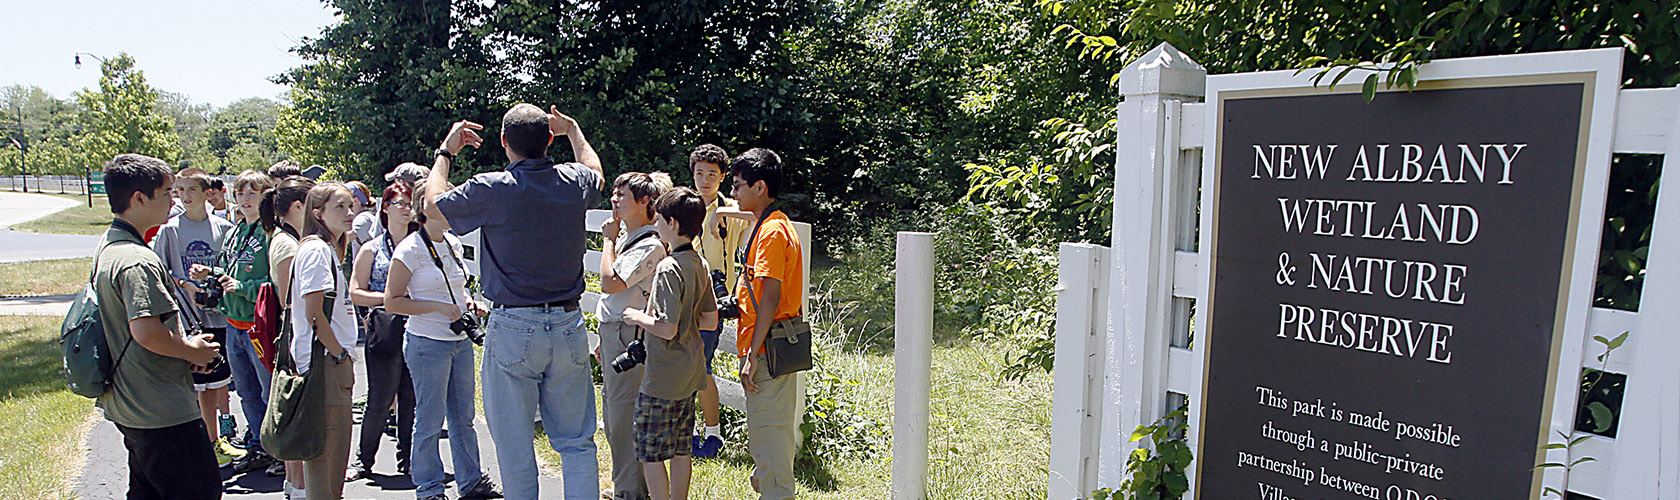 Naturalist Joe Letsche talks to students before they enter the New Albany Wetland and Nature Preserve during their class Wednesday, June 13, 2012.